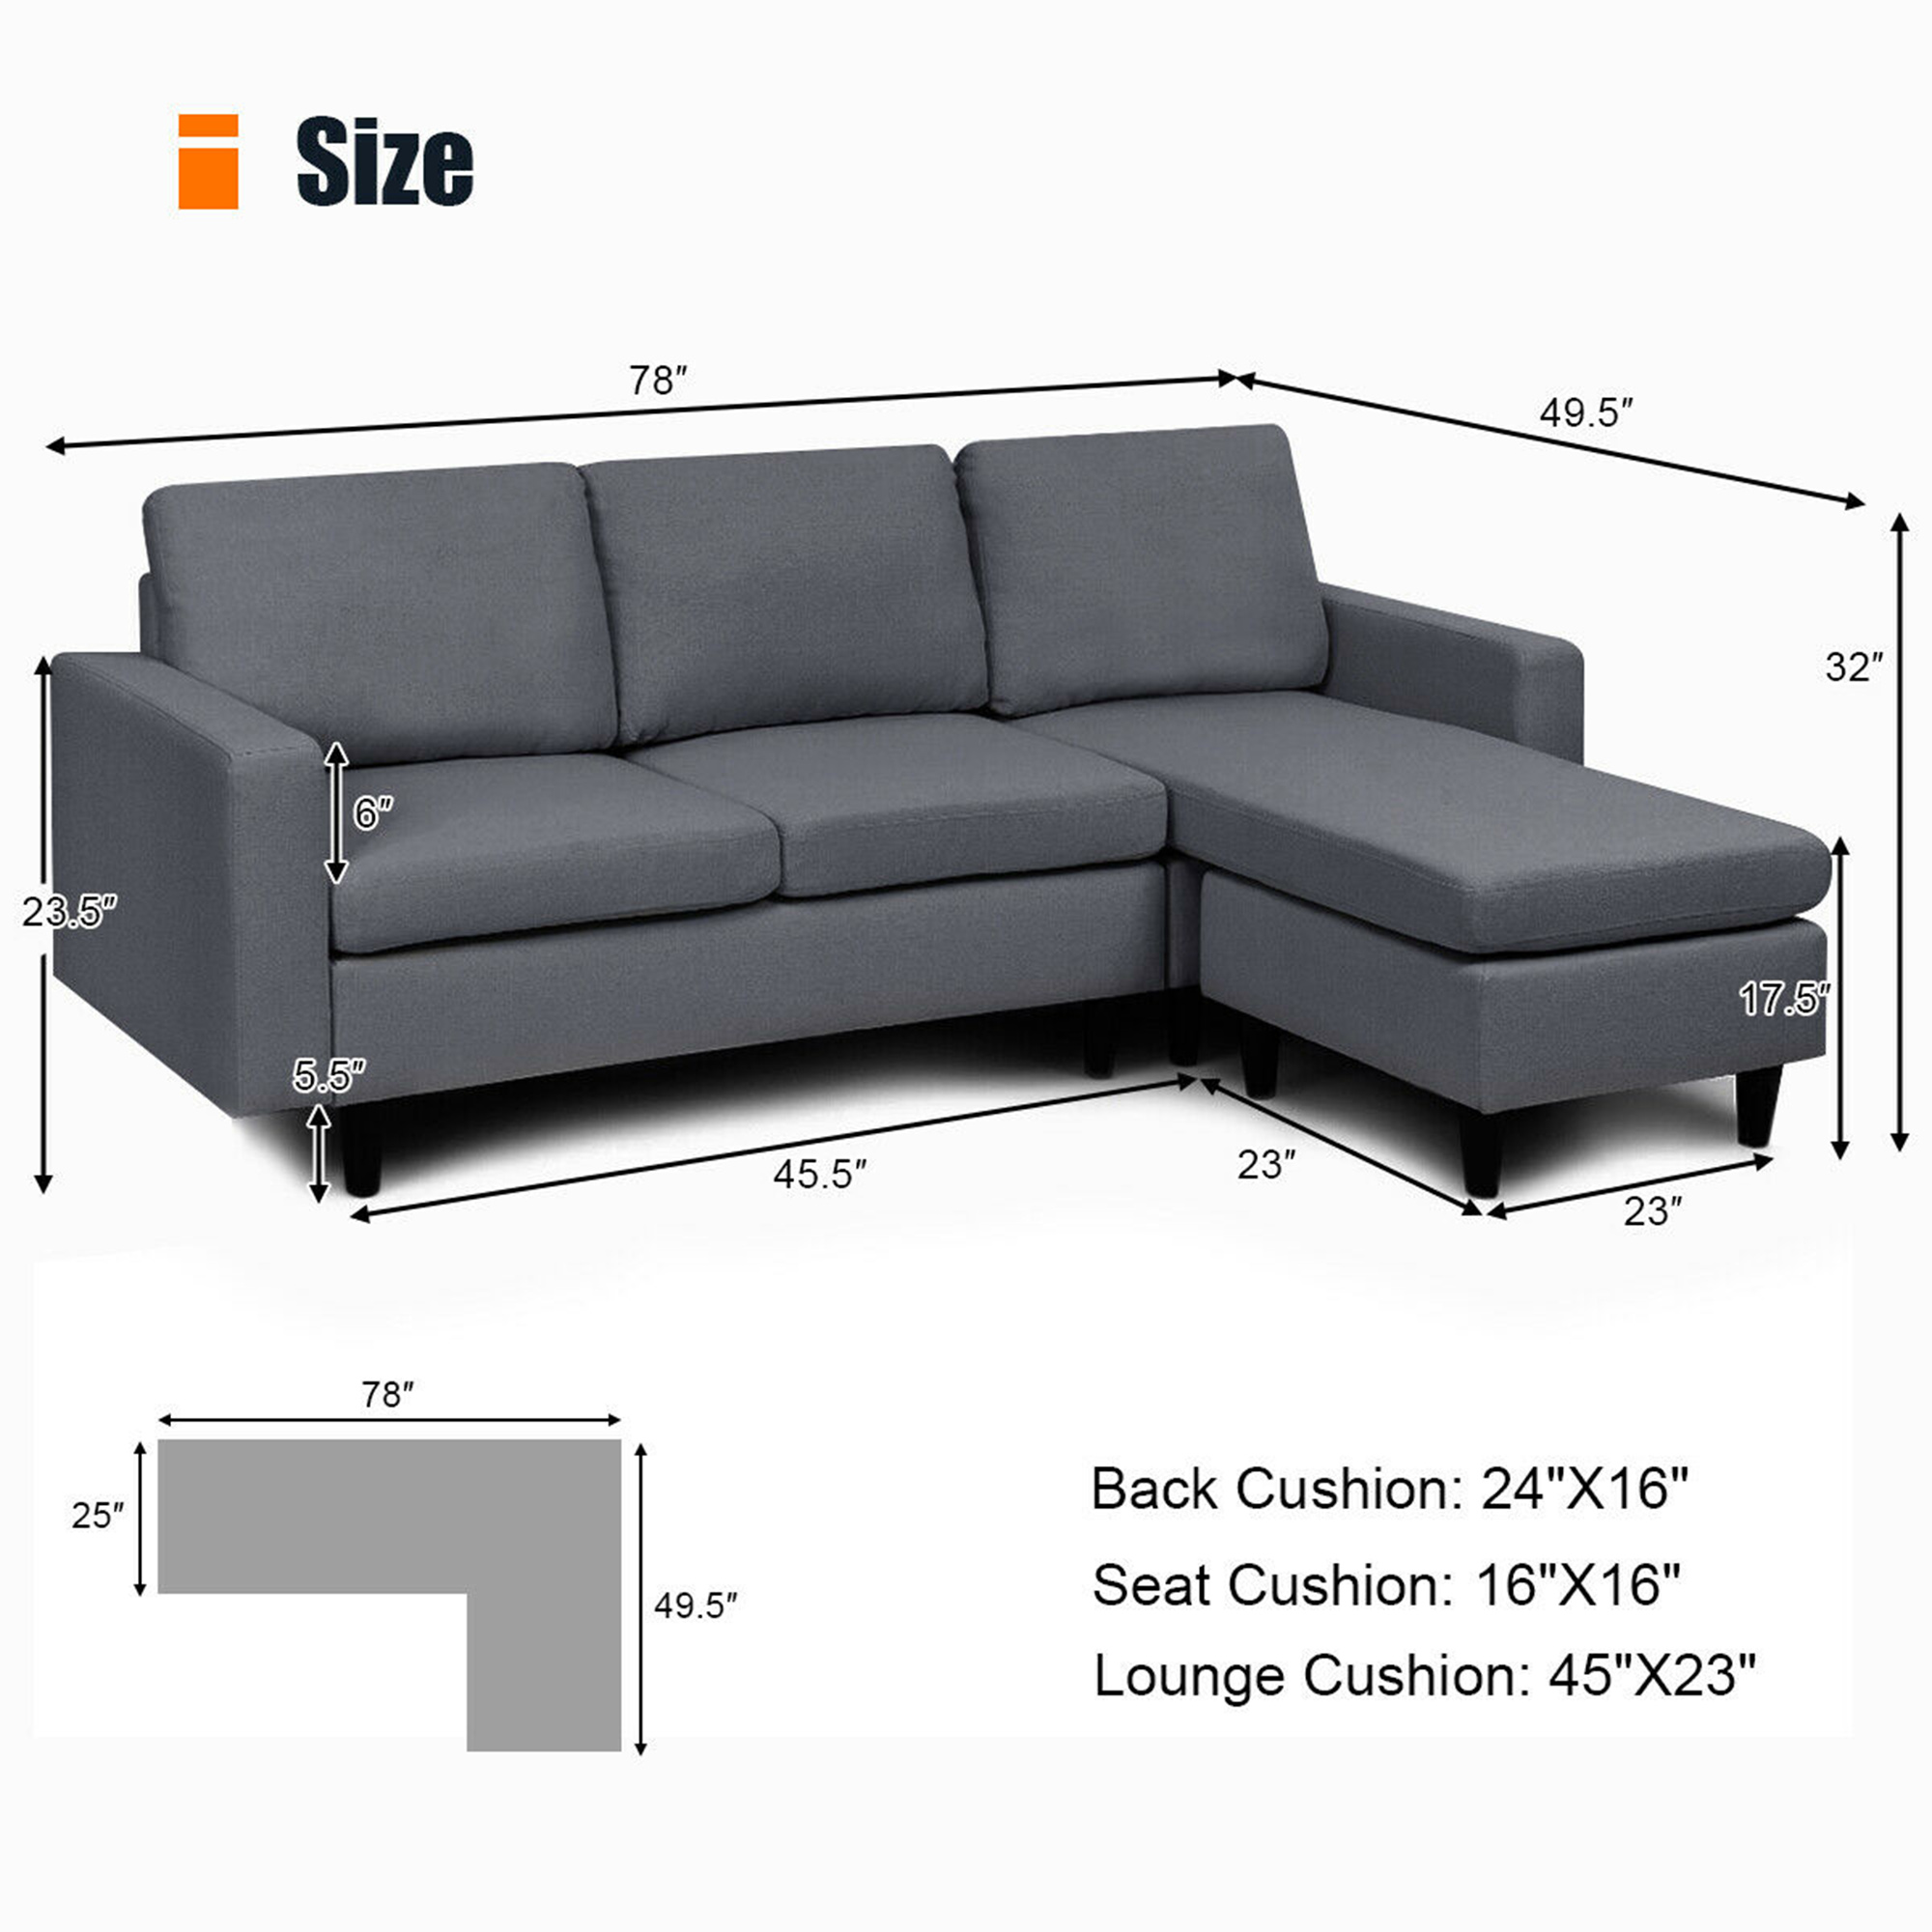 Convertible L-shaped Sectional Sofa Couch w/ Massage Back Cu